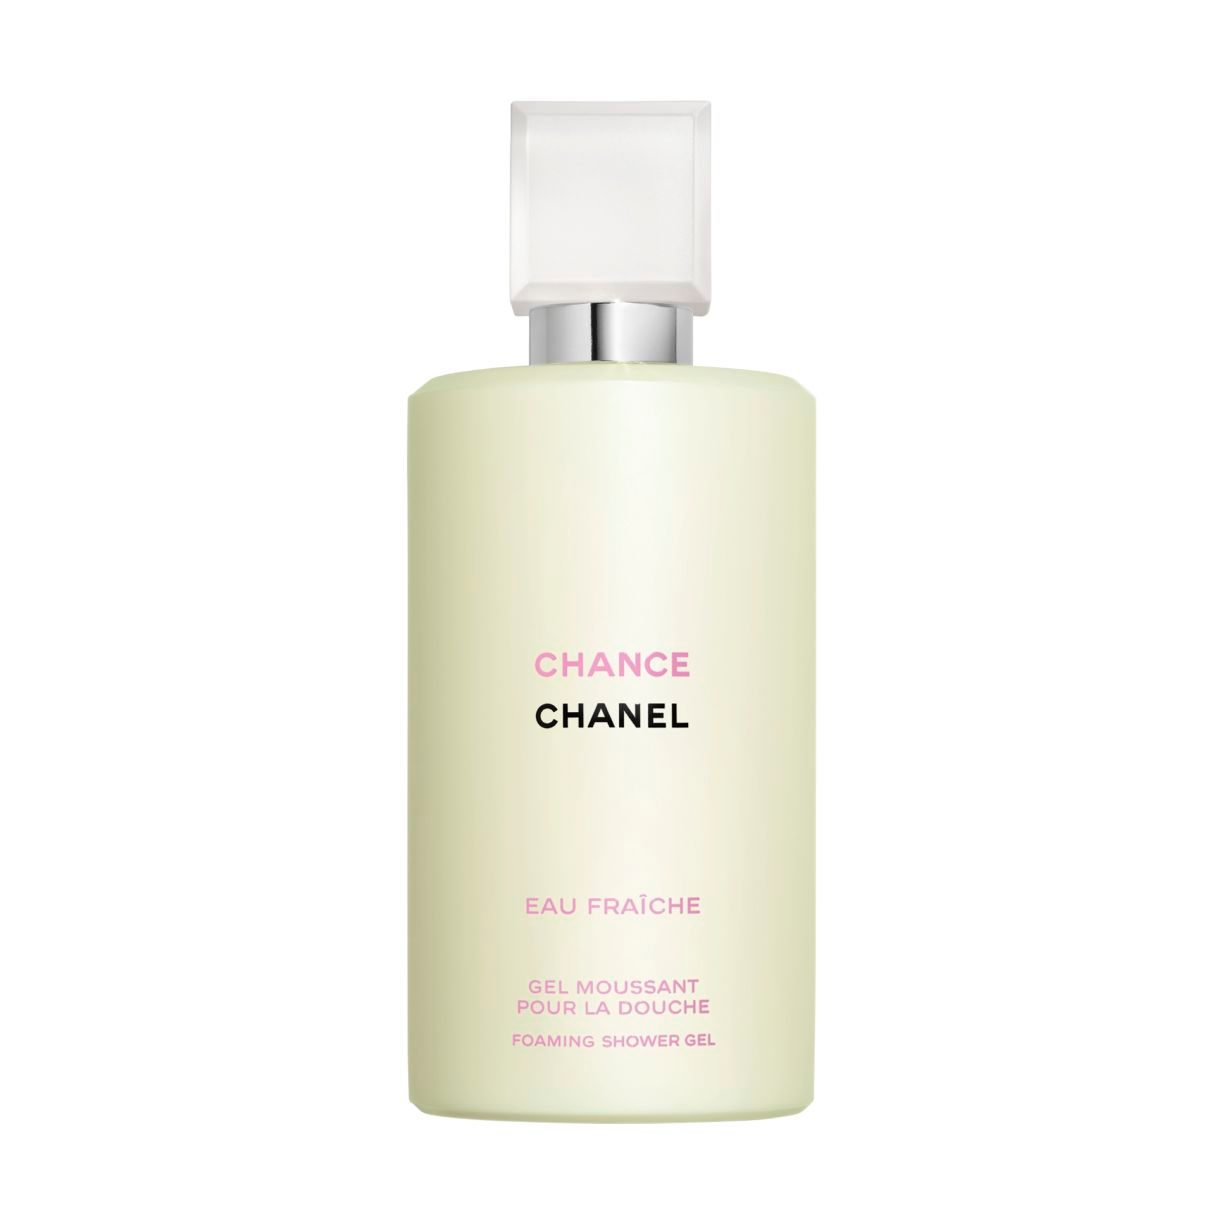 CHANCE EAU FRAÎCHE FOAMING SHOWER GEL - เจลโฟมอาบน้ำ